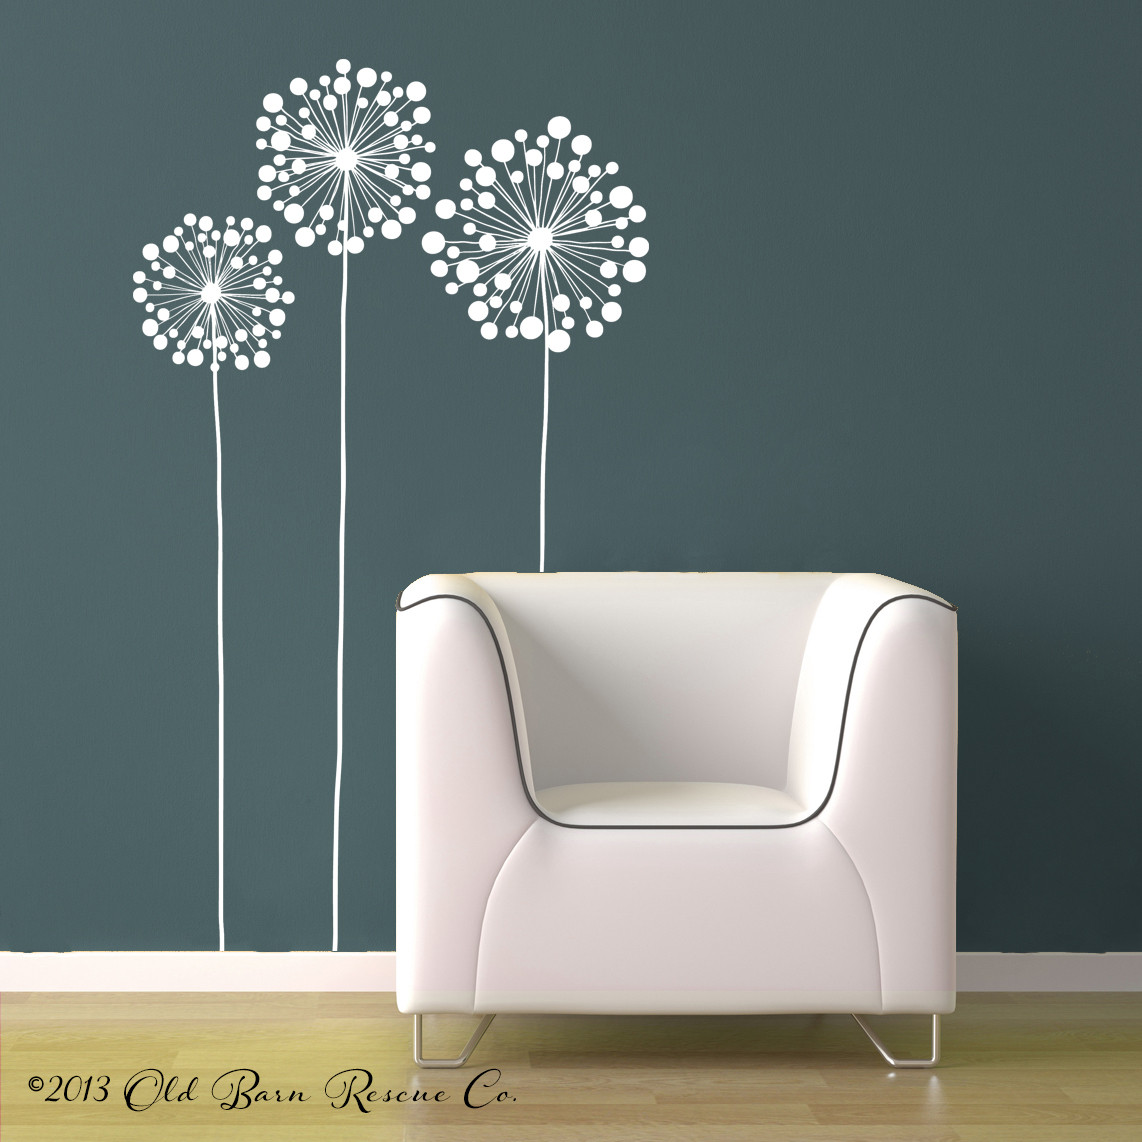 Large Flowers Wall Decal Large Wall Art Old Barn Rescue